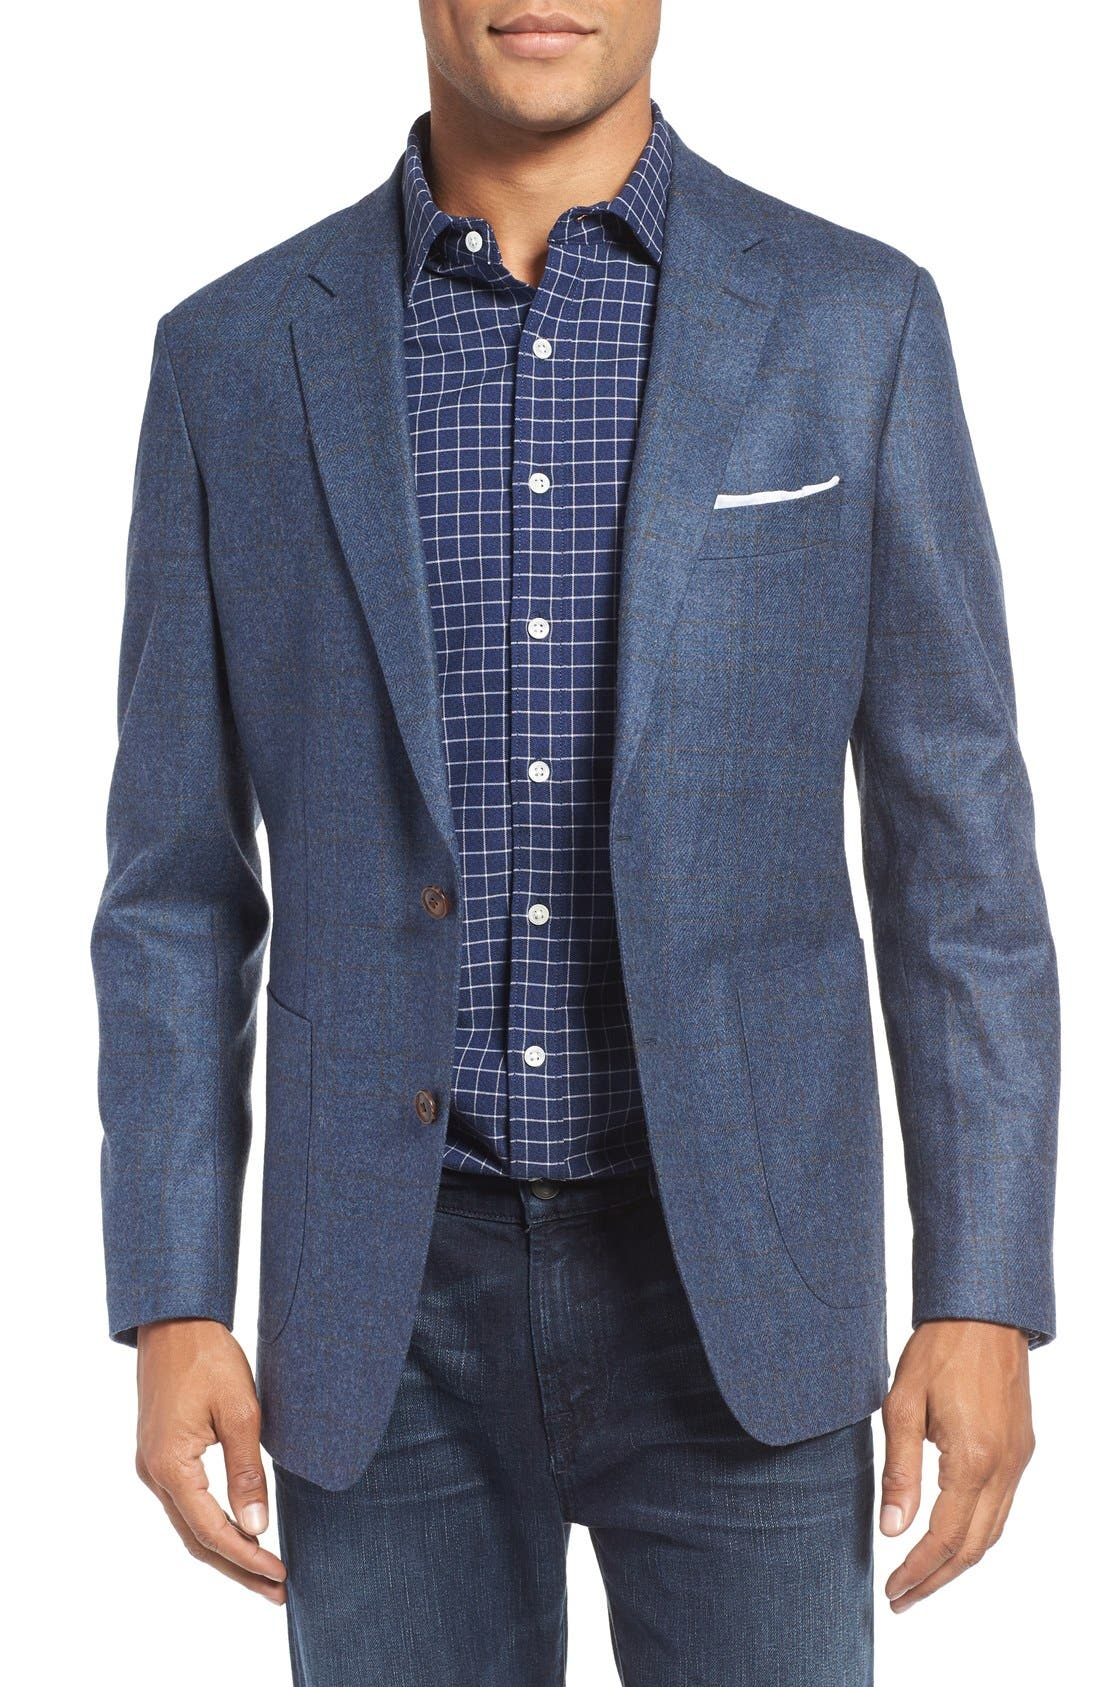 Rodd & Gunn 'Clareinch' Herringbone Plaid Sport Coat